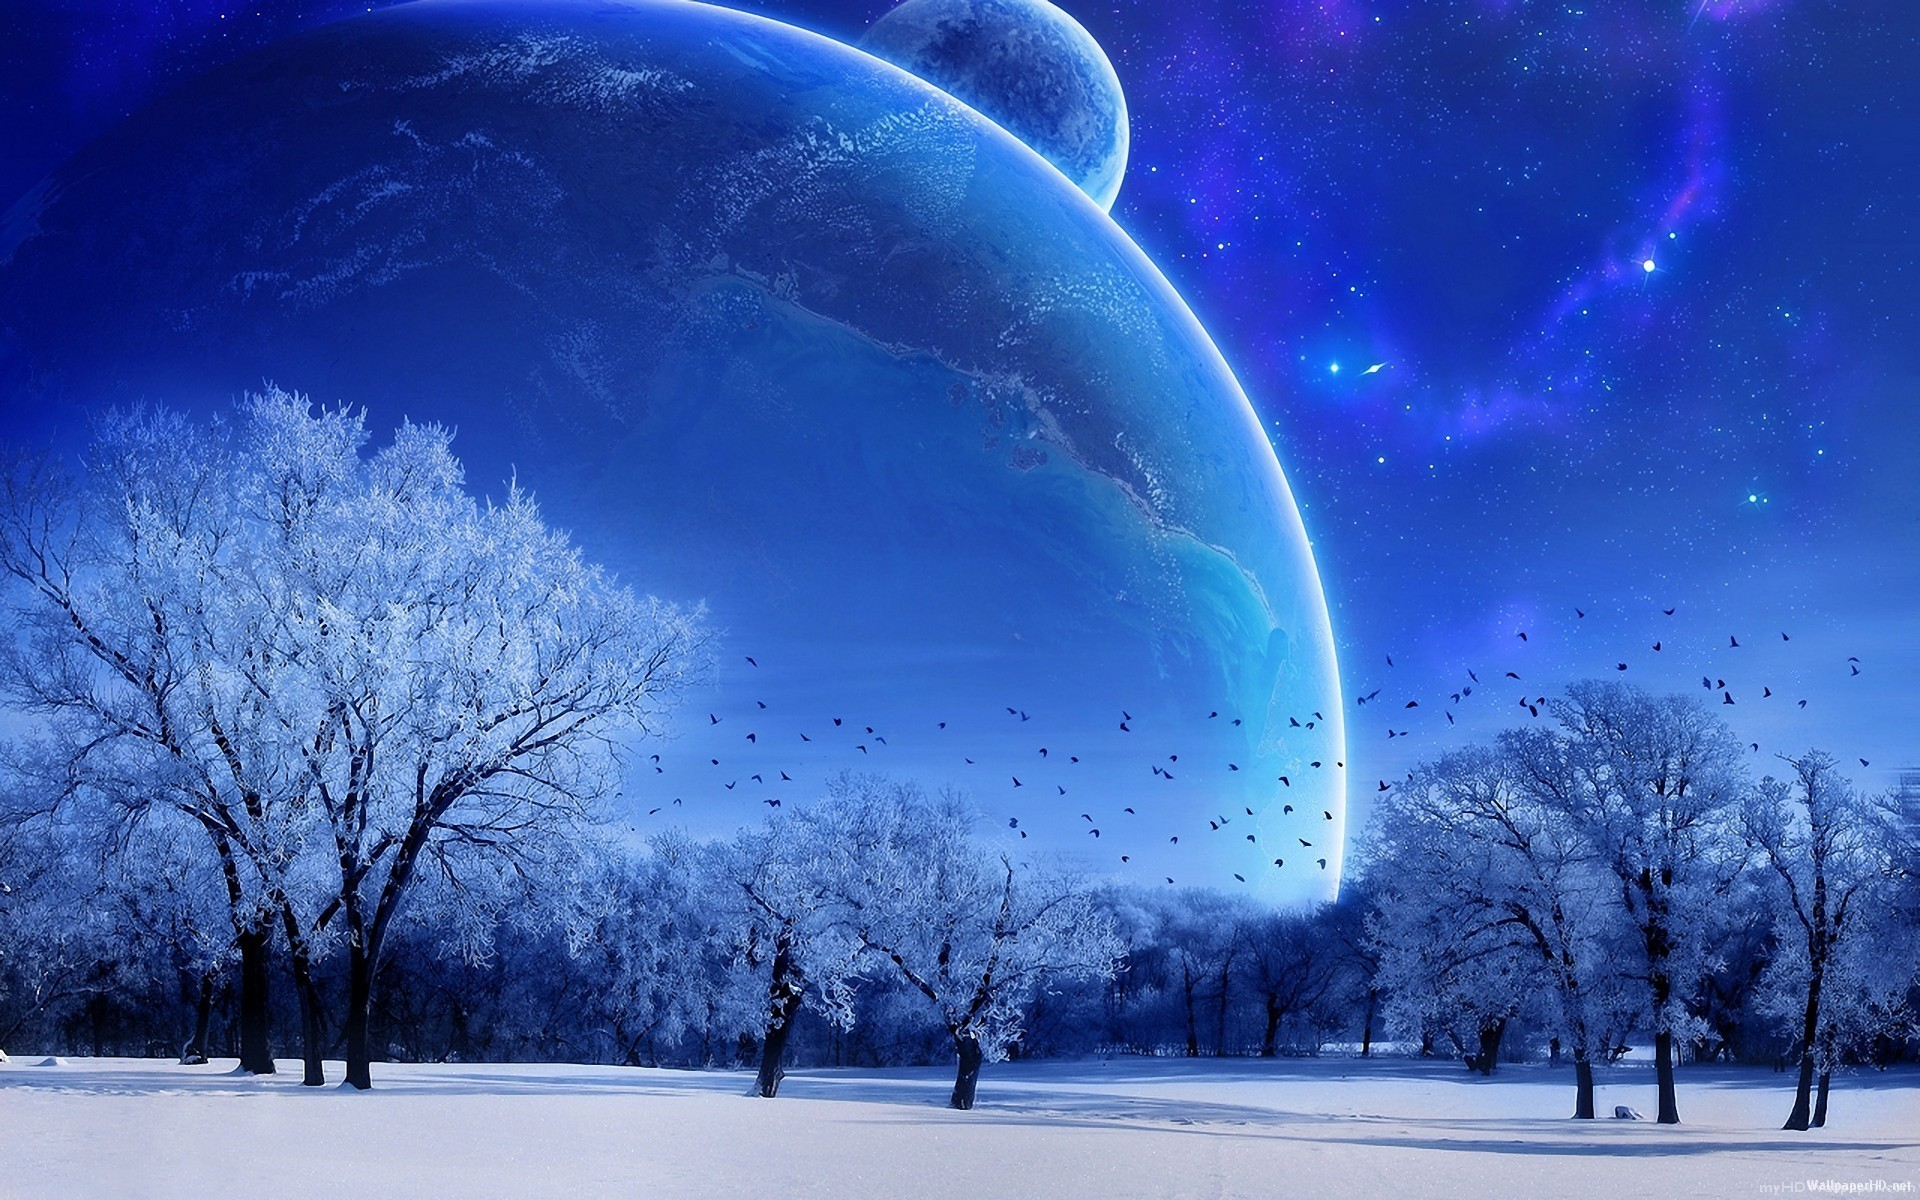 23 best Deep Space images on Pinterest   Deep space, Hd wallpaper and Wallpaper  space